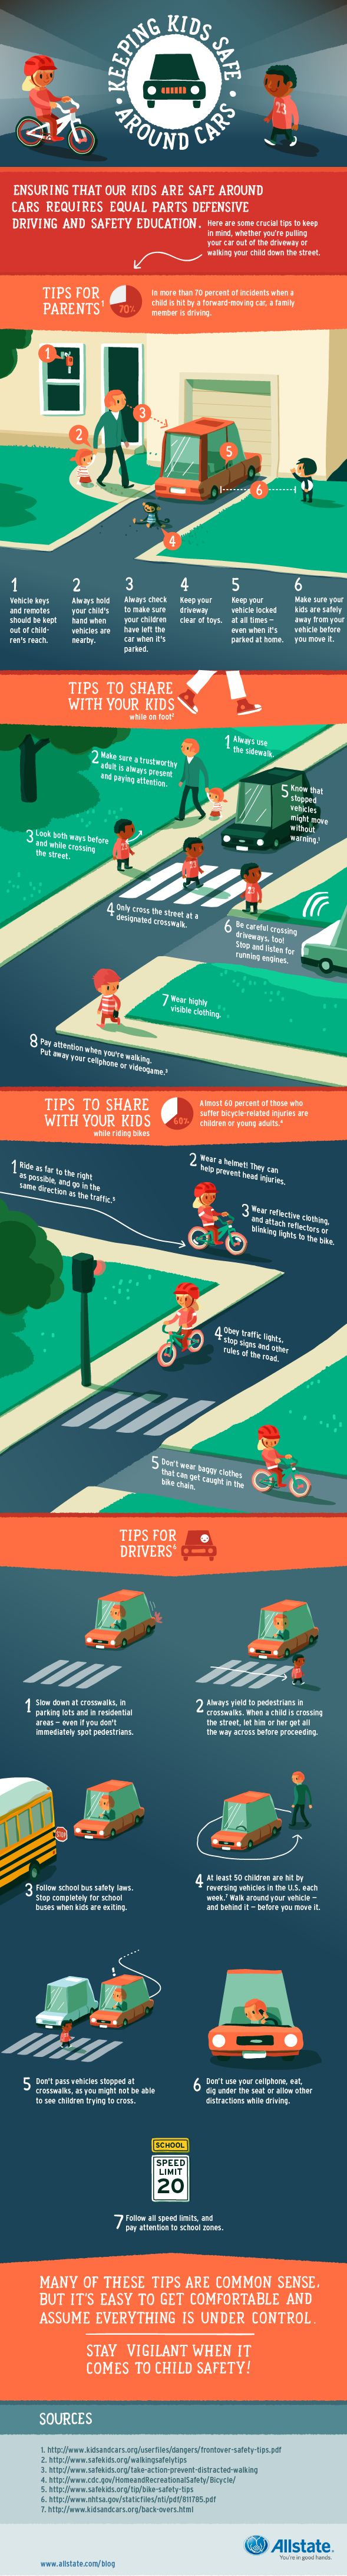 Car colour affects road safety - Infographic Keeping Kids Safe Around Cars